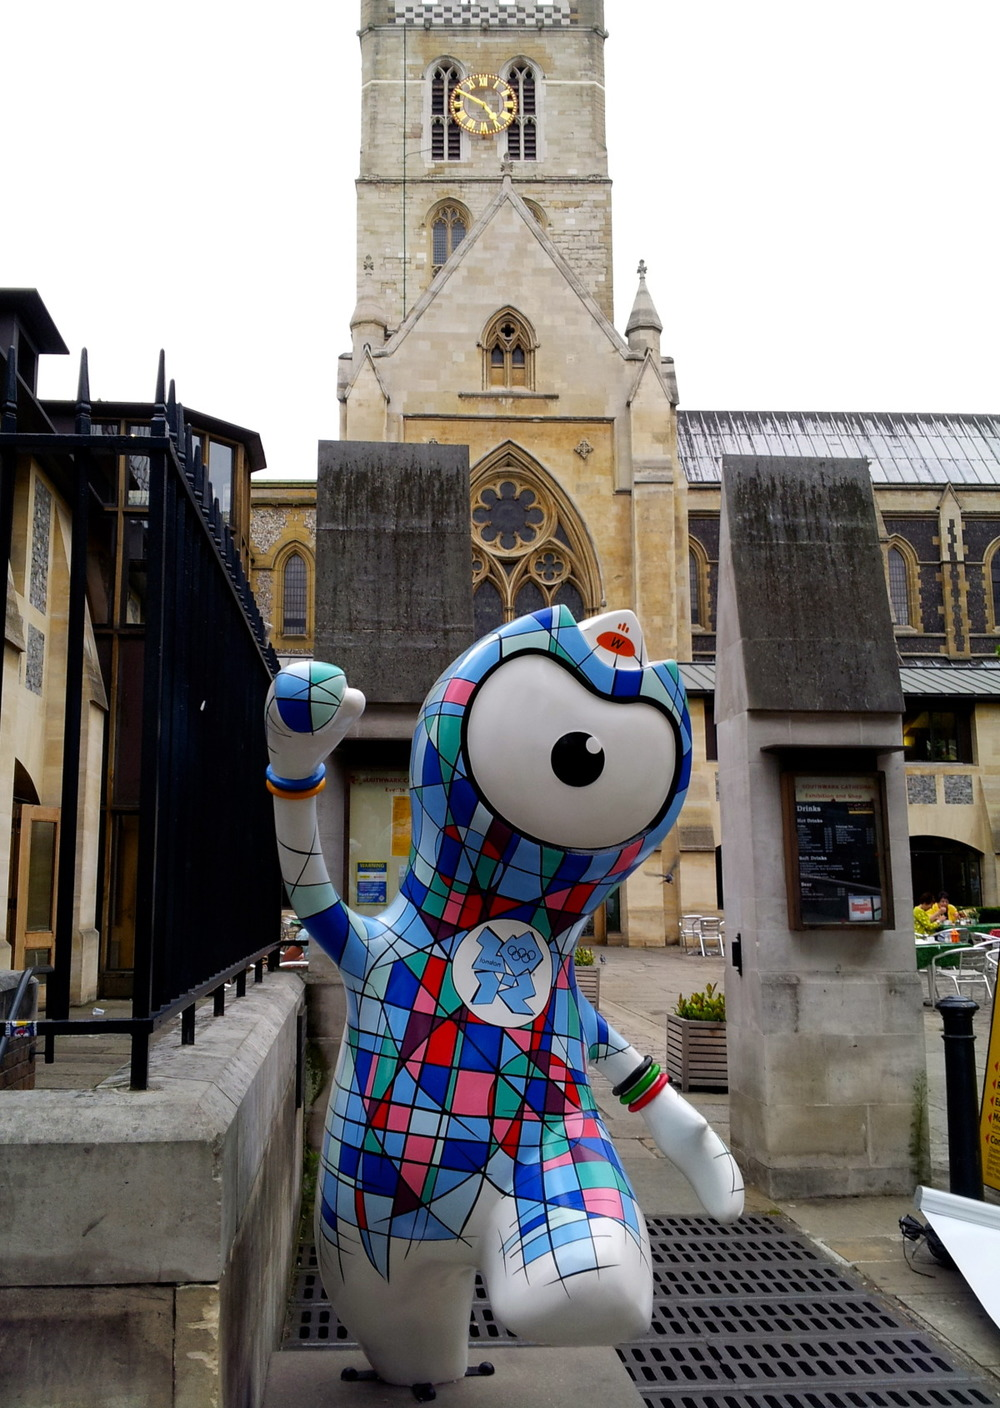 Stainless Glass Wenlock at Southwark Cathedral